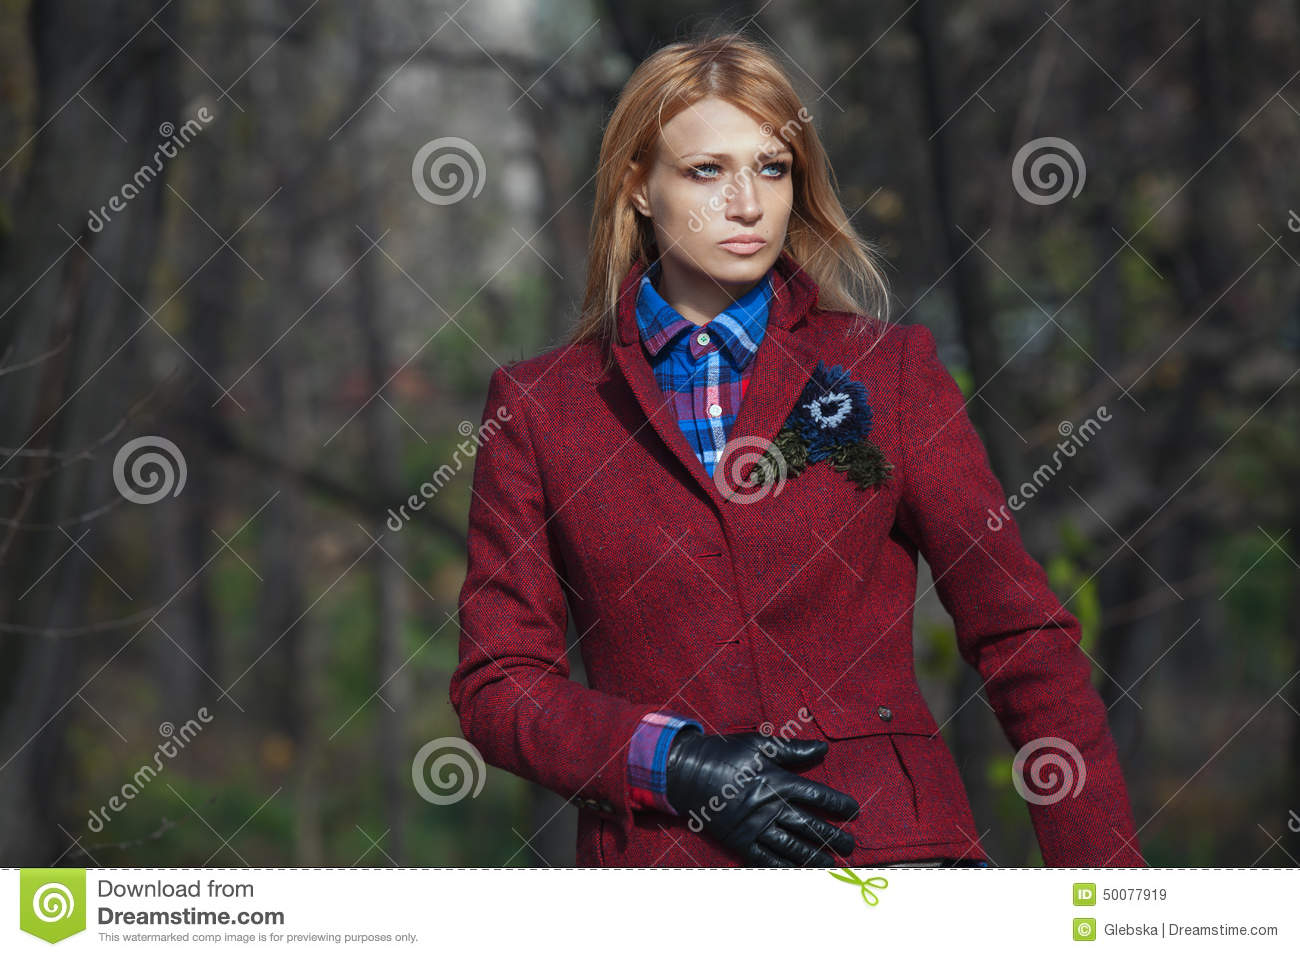 Apologise that, mature ladies in leather gloves question